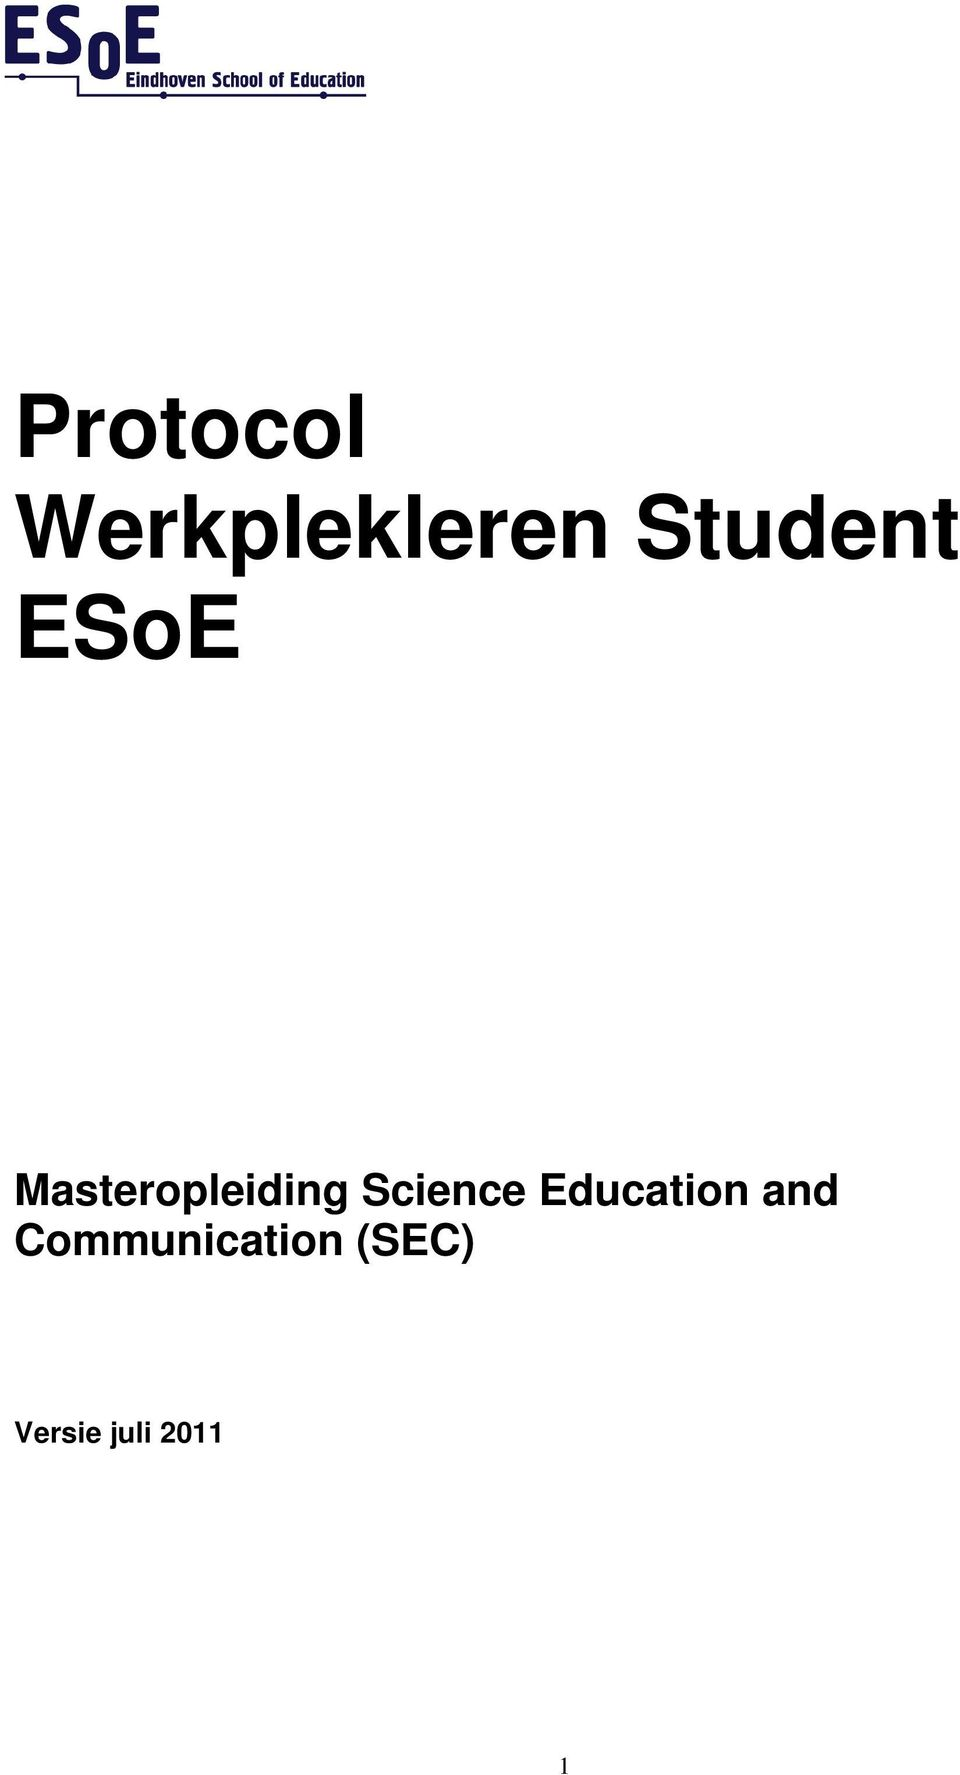 Masteropleiding Science